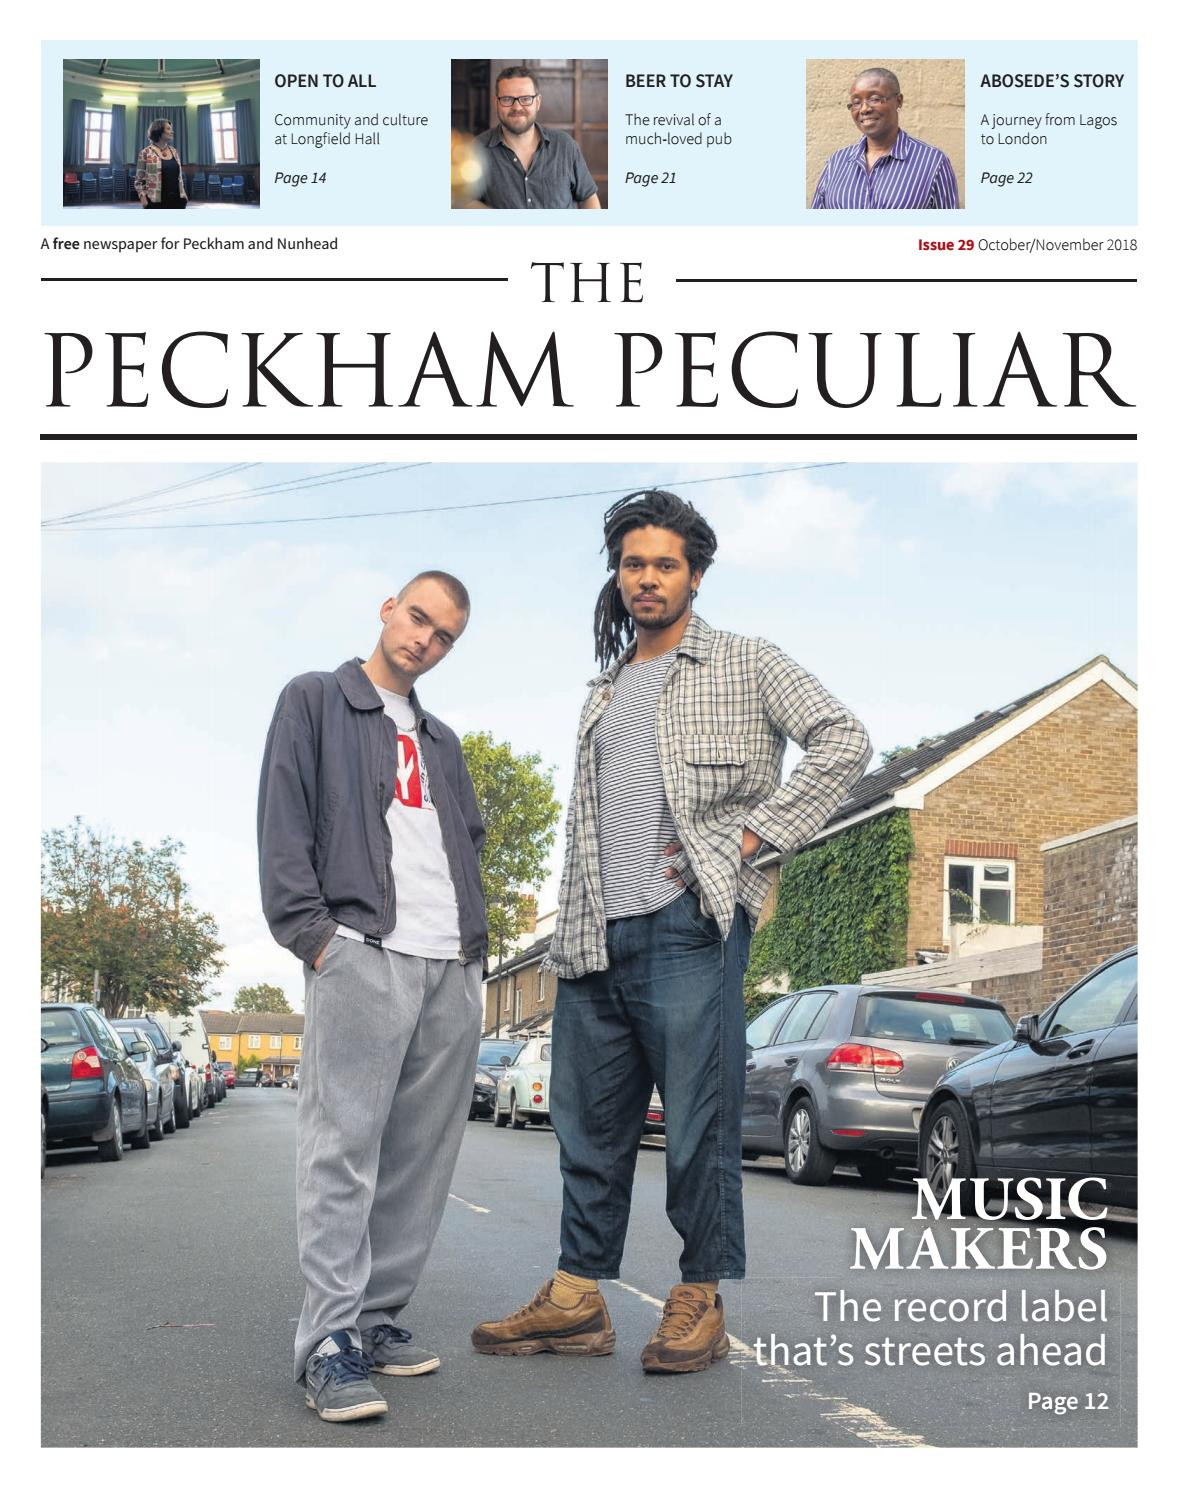 9802138c8 Issue 29 of The Peckham Peculiar by The Peckham Peculiar - issuu